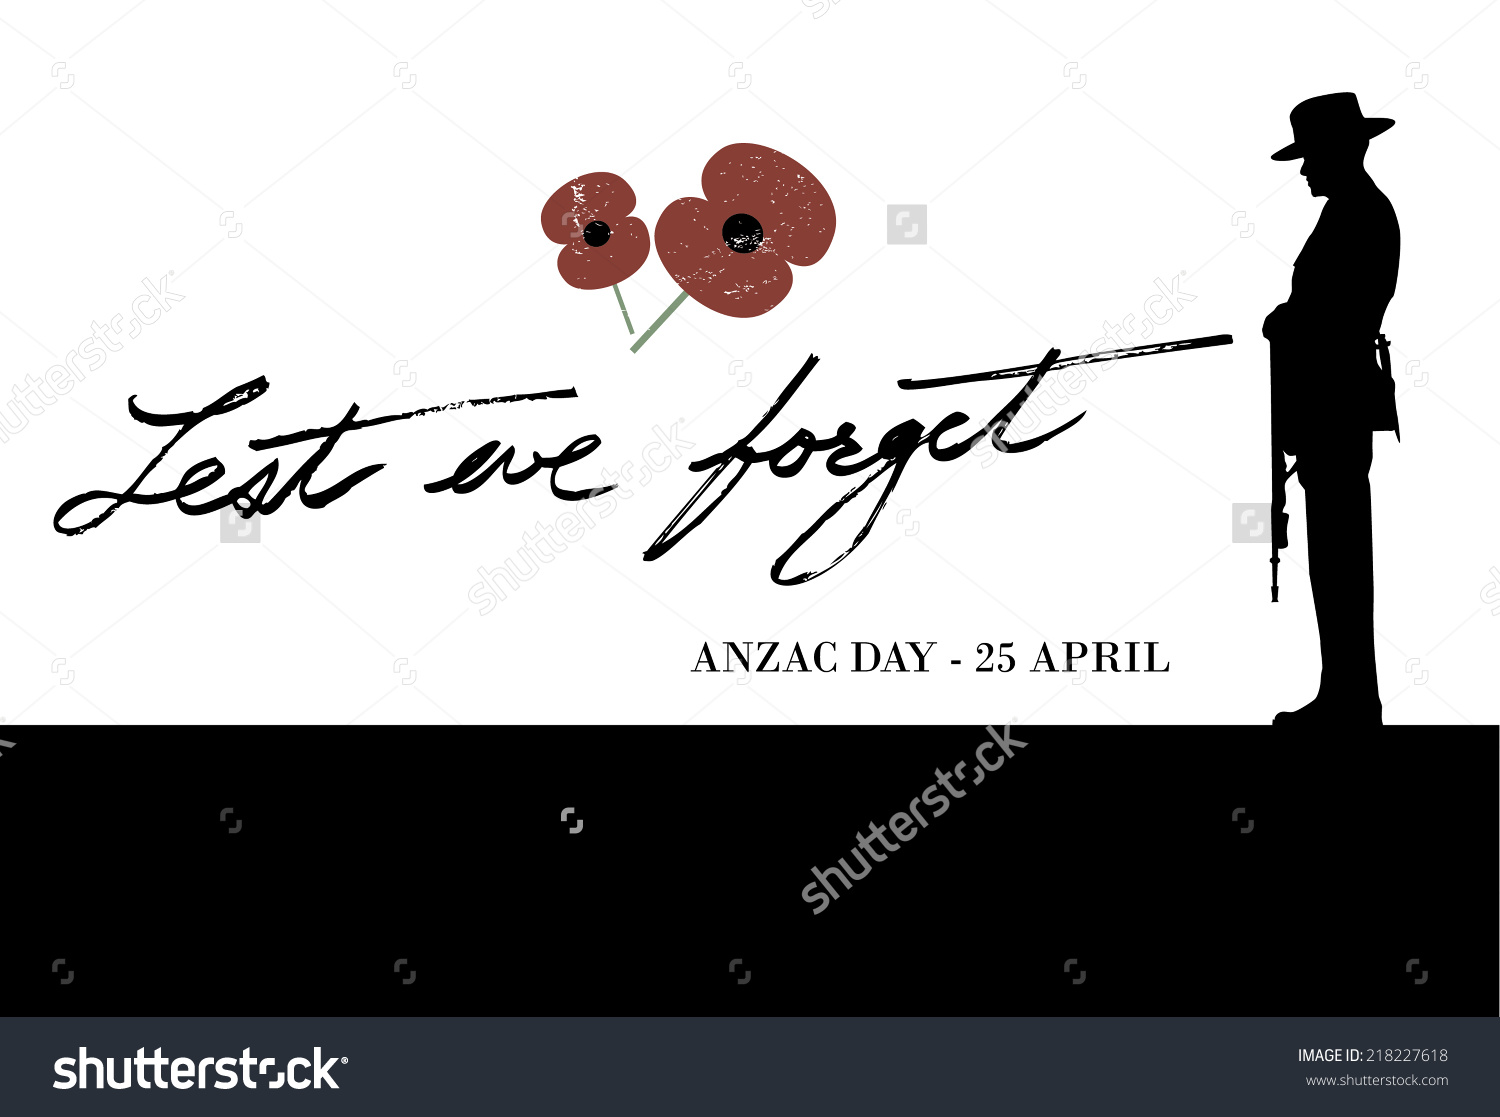 Soldier clipart anzac day Best Anzac Clipart Clipart Day